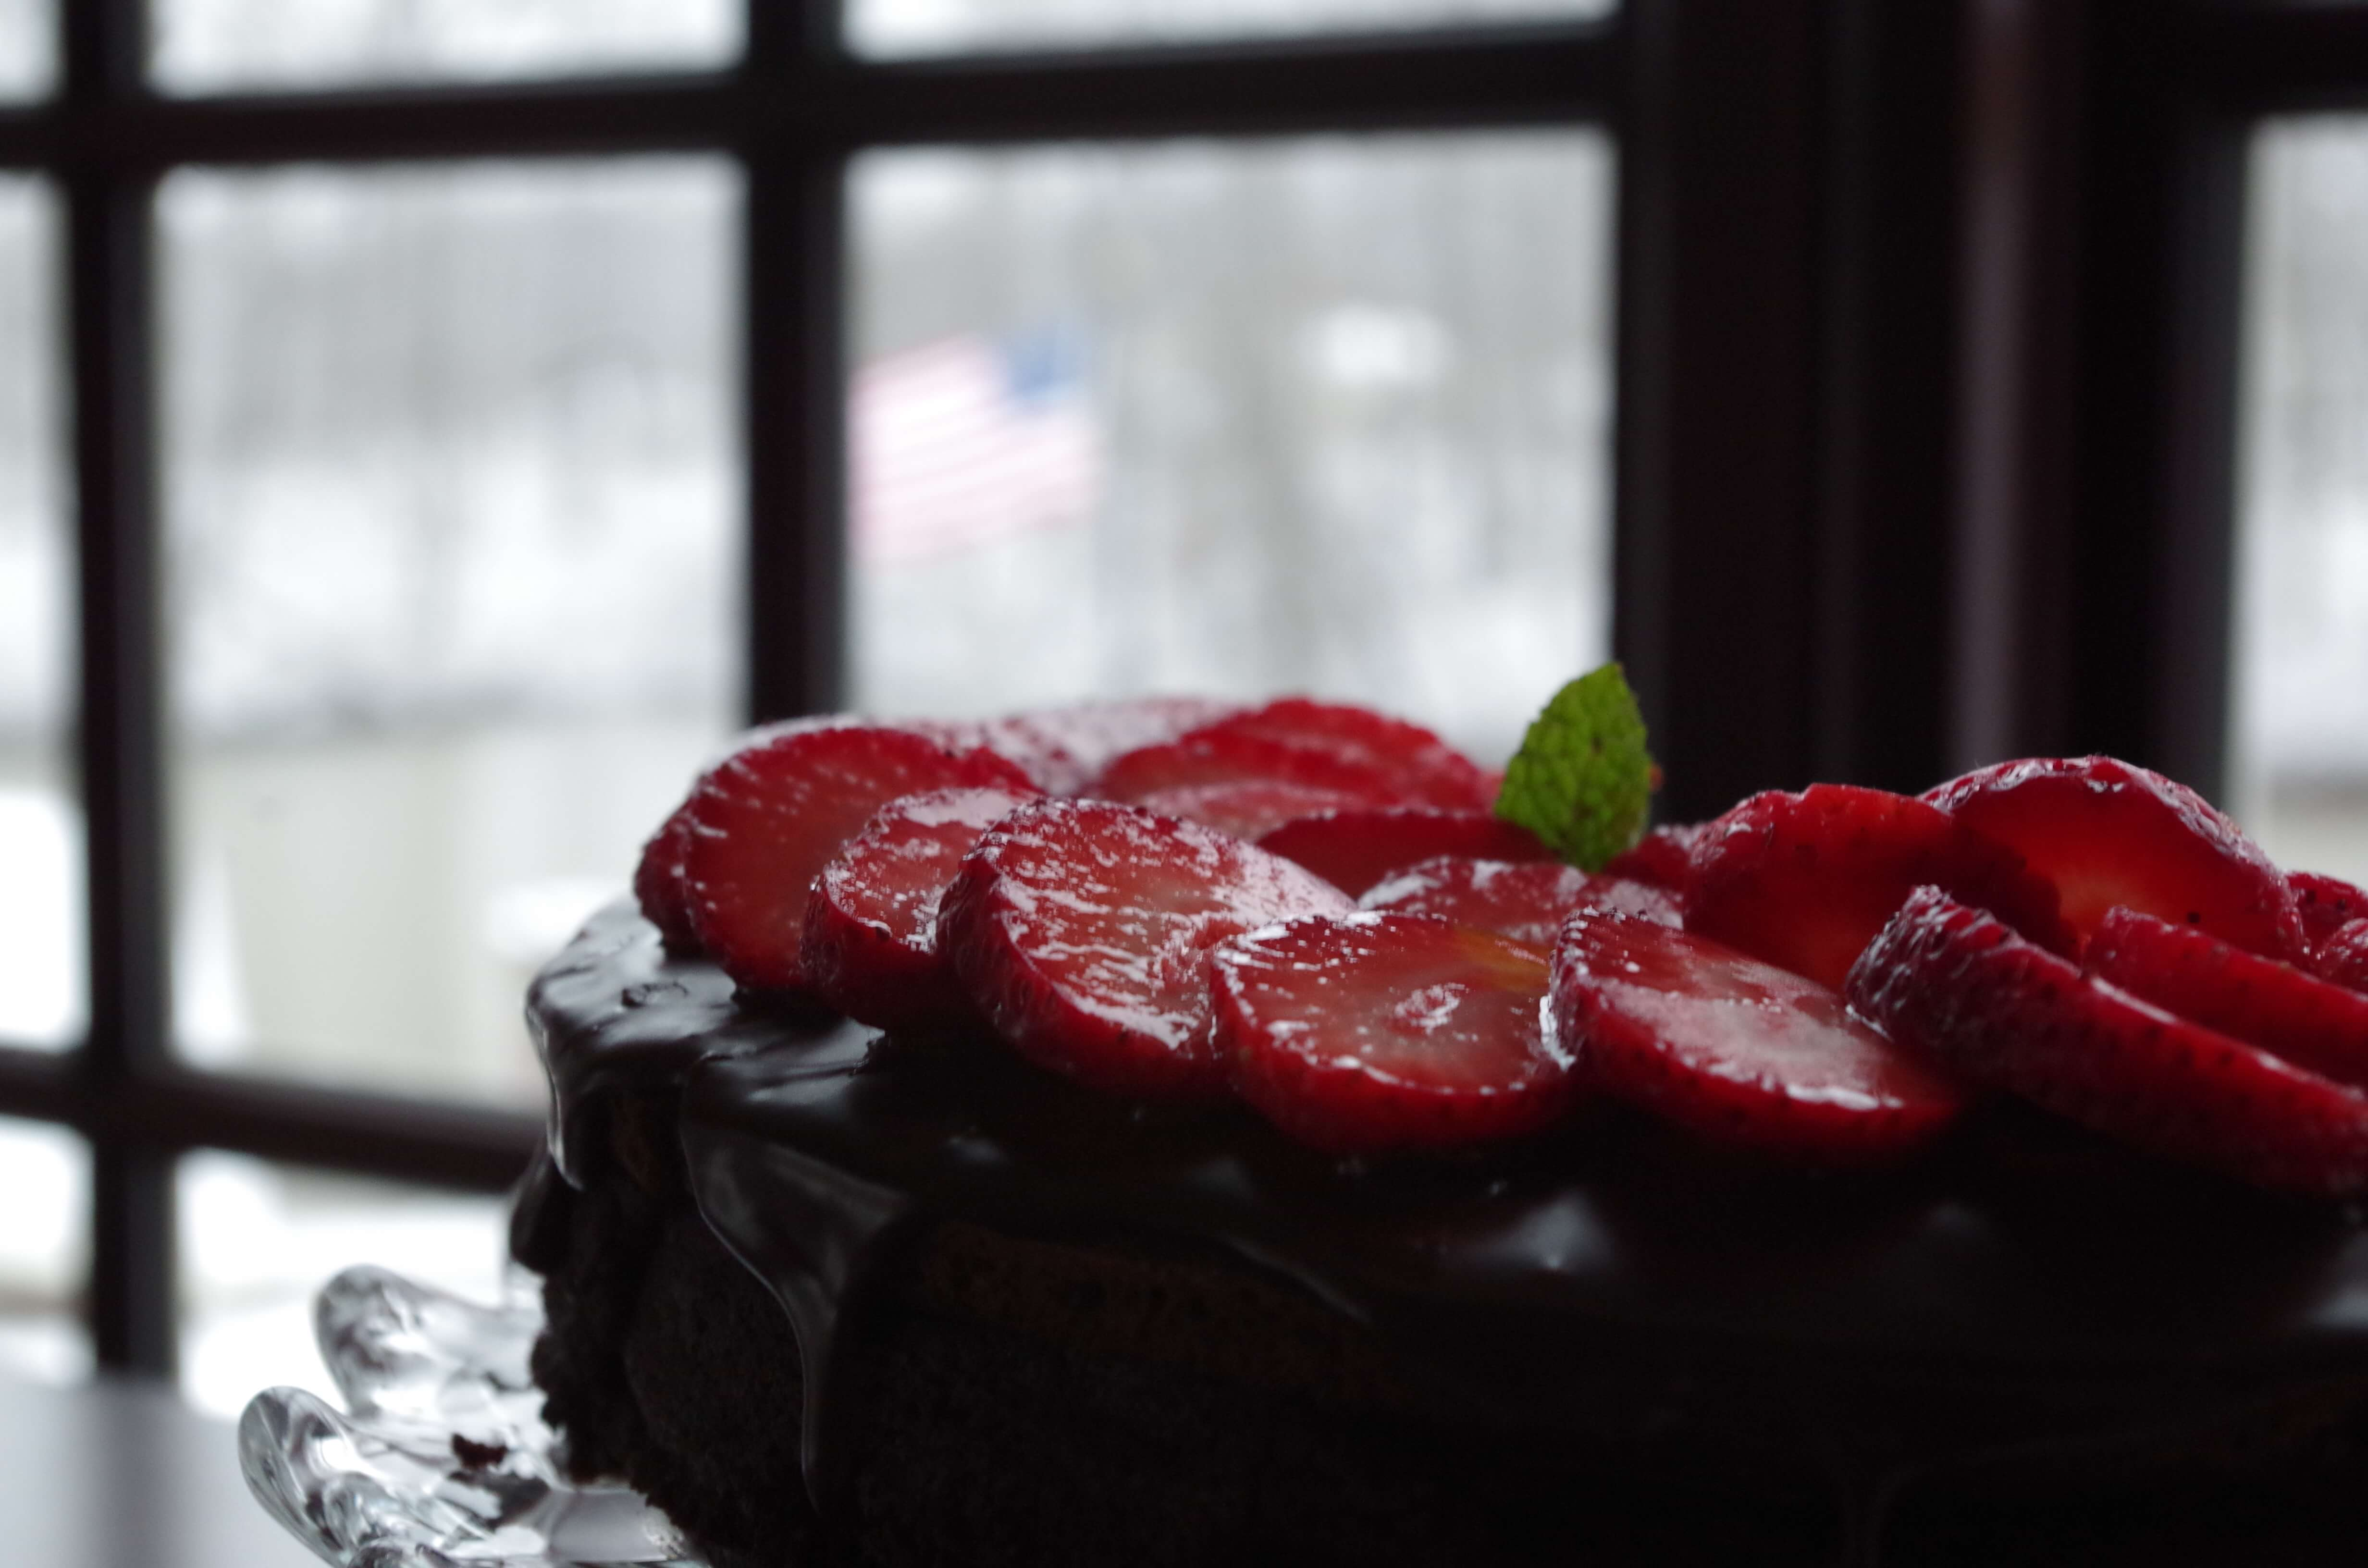 Flourless chocolate cake with Easy chocolate ganache